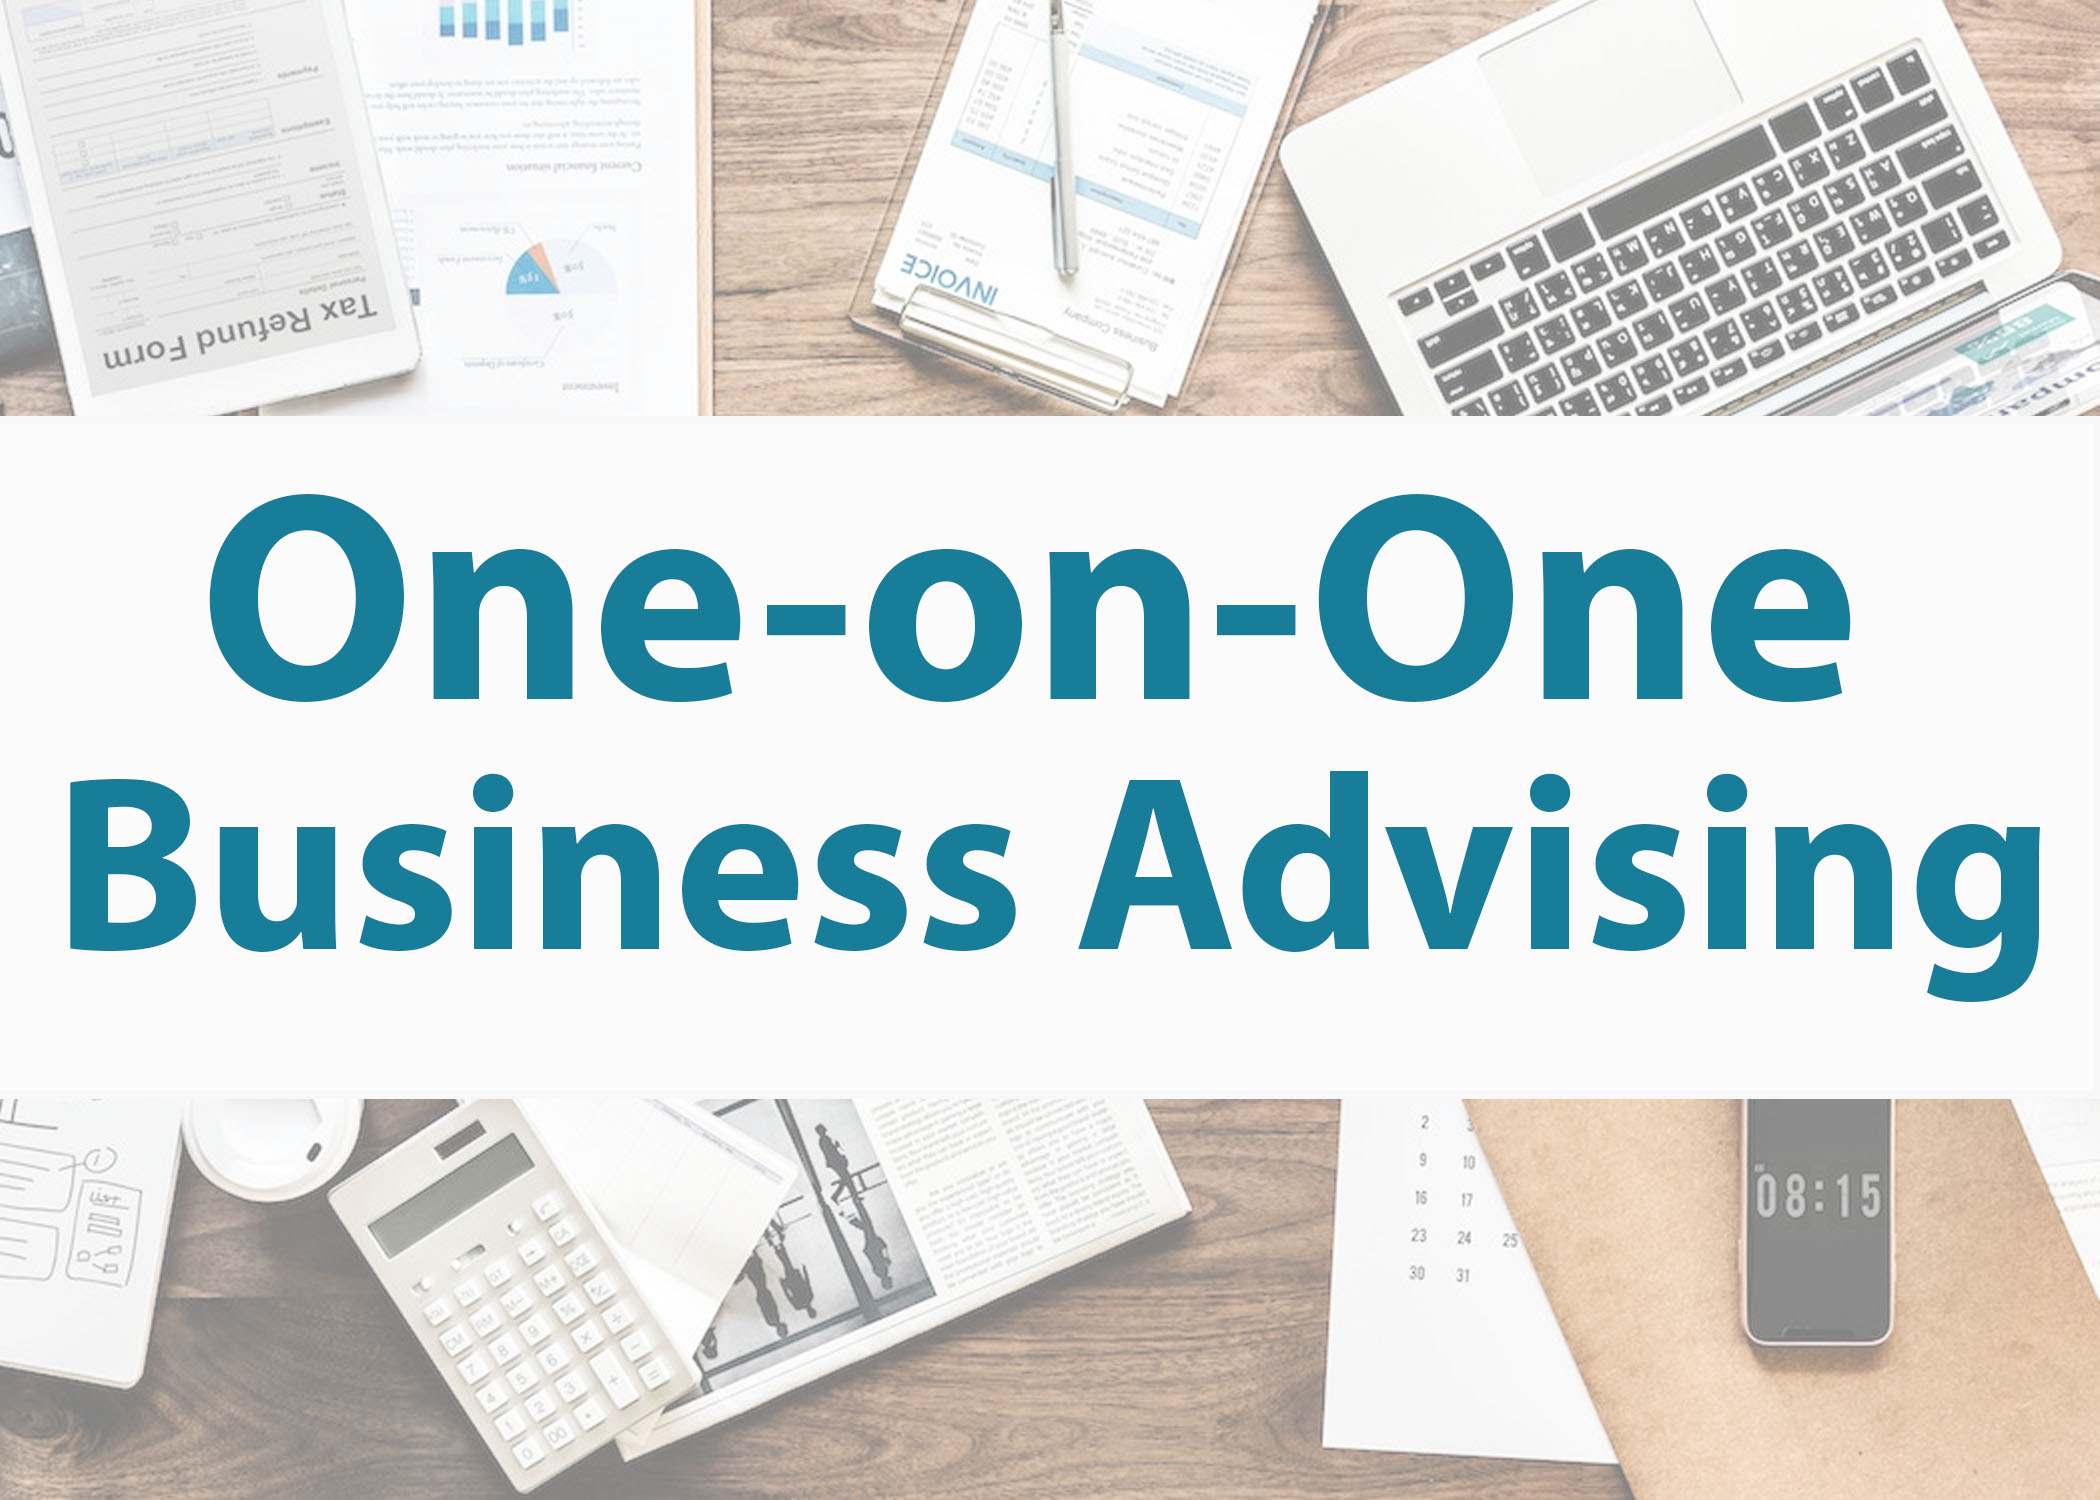 One-on-one business advising